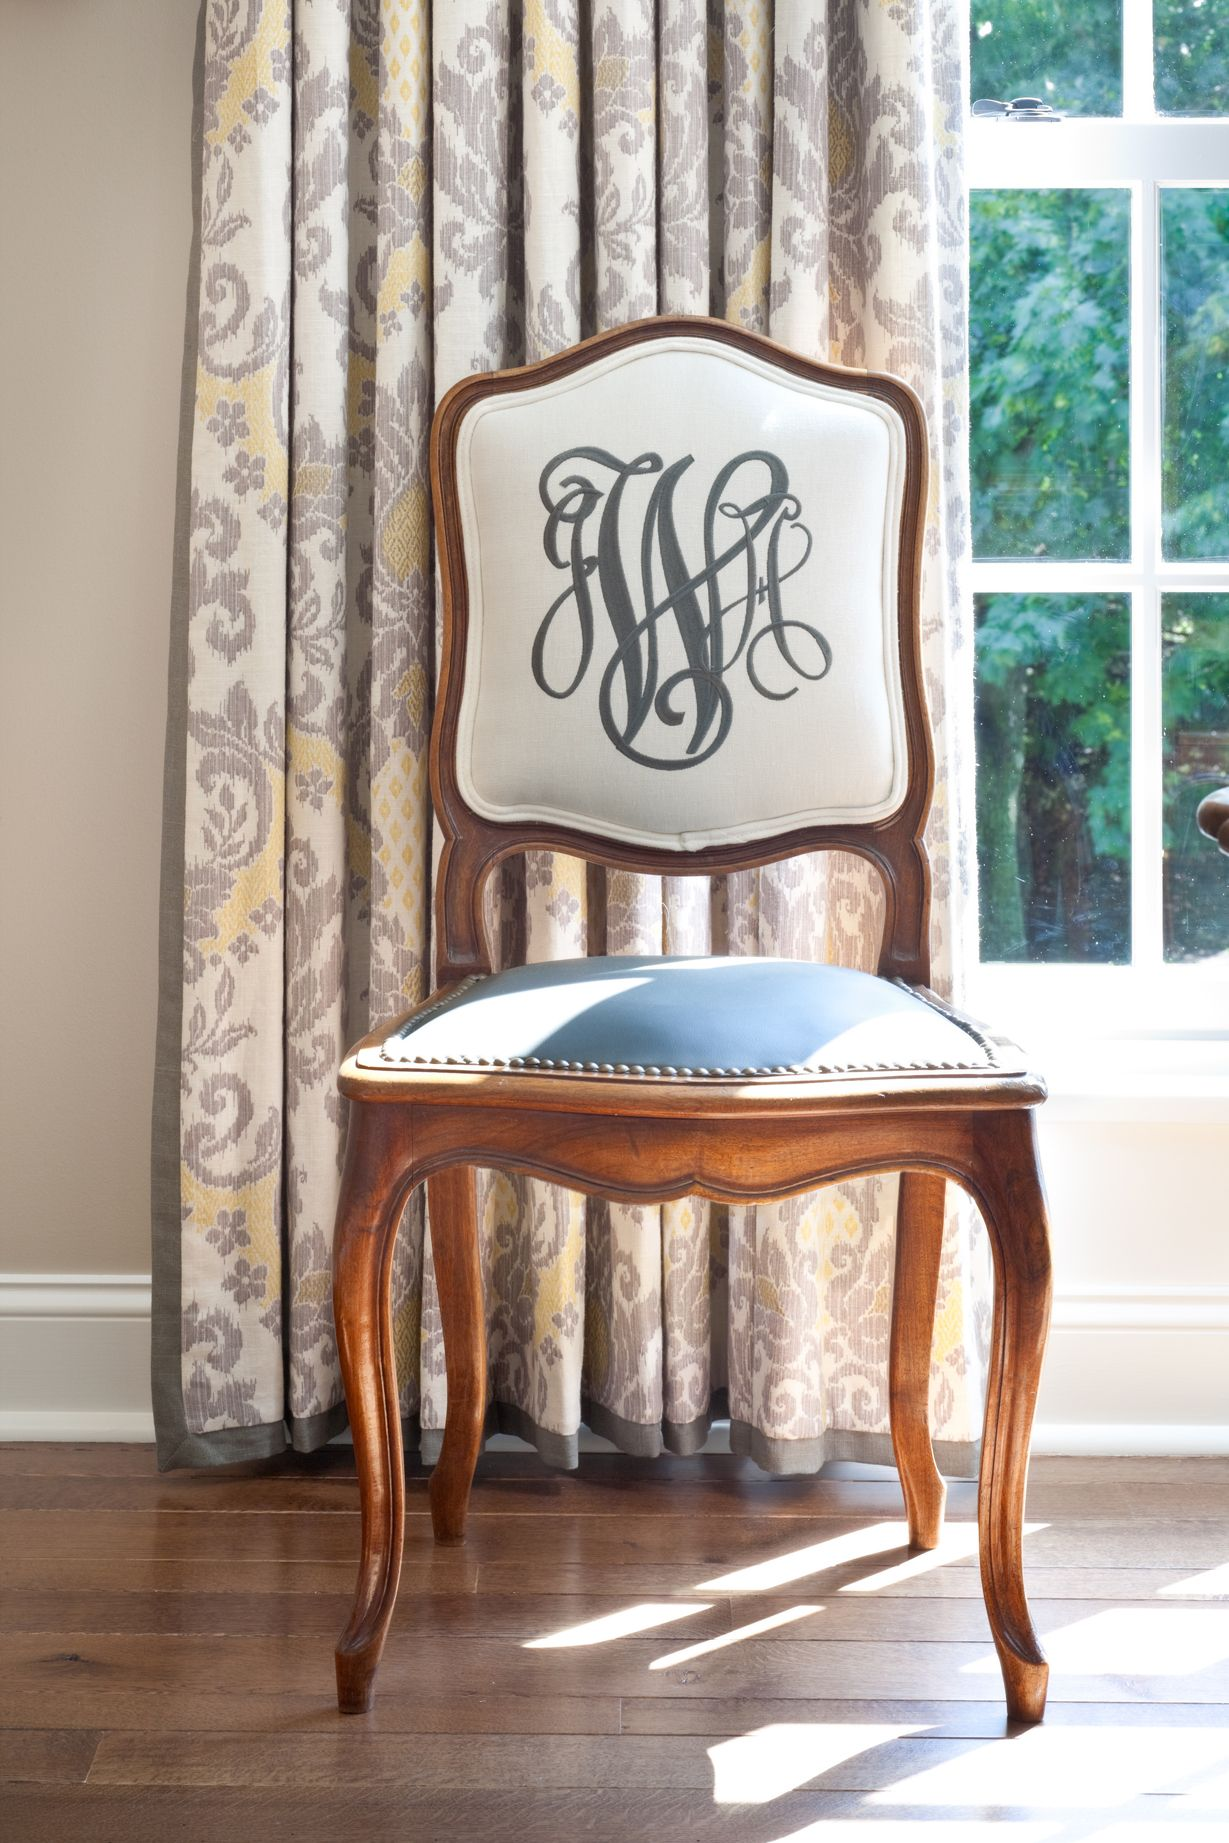 Adores Monograms Monograms Never Monograms Styles Lmb Monograms Artsu2026 & Nell Hills | Furniture | Pinterest | Monograms Fancy and House